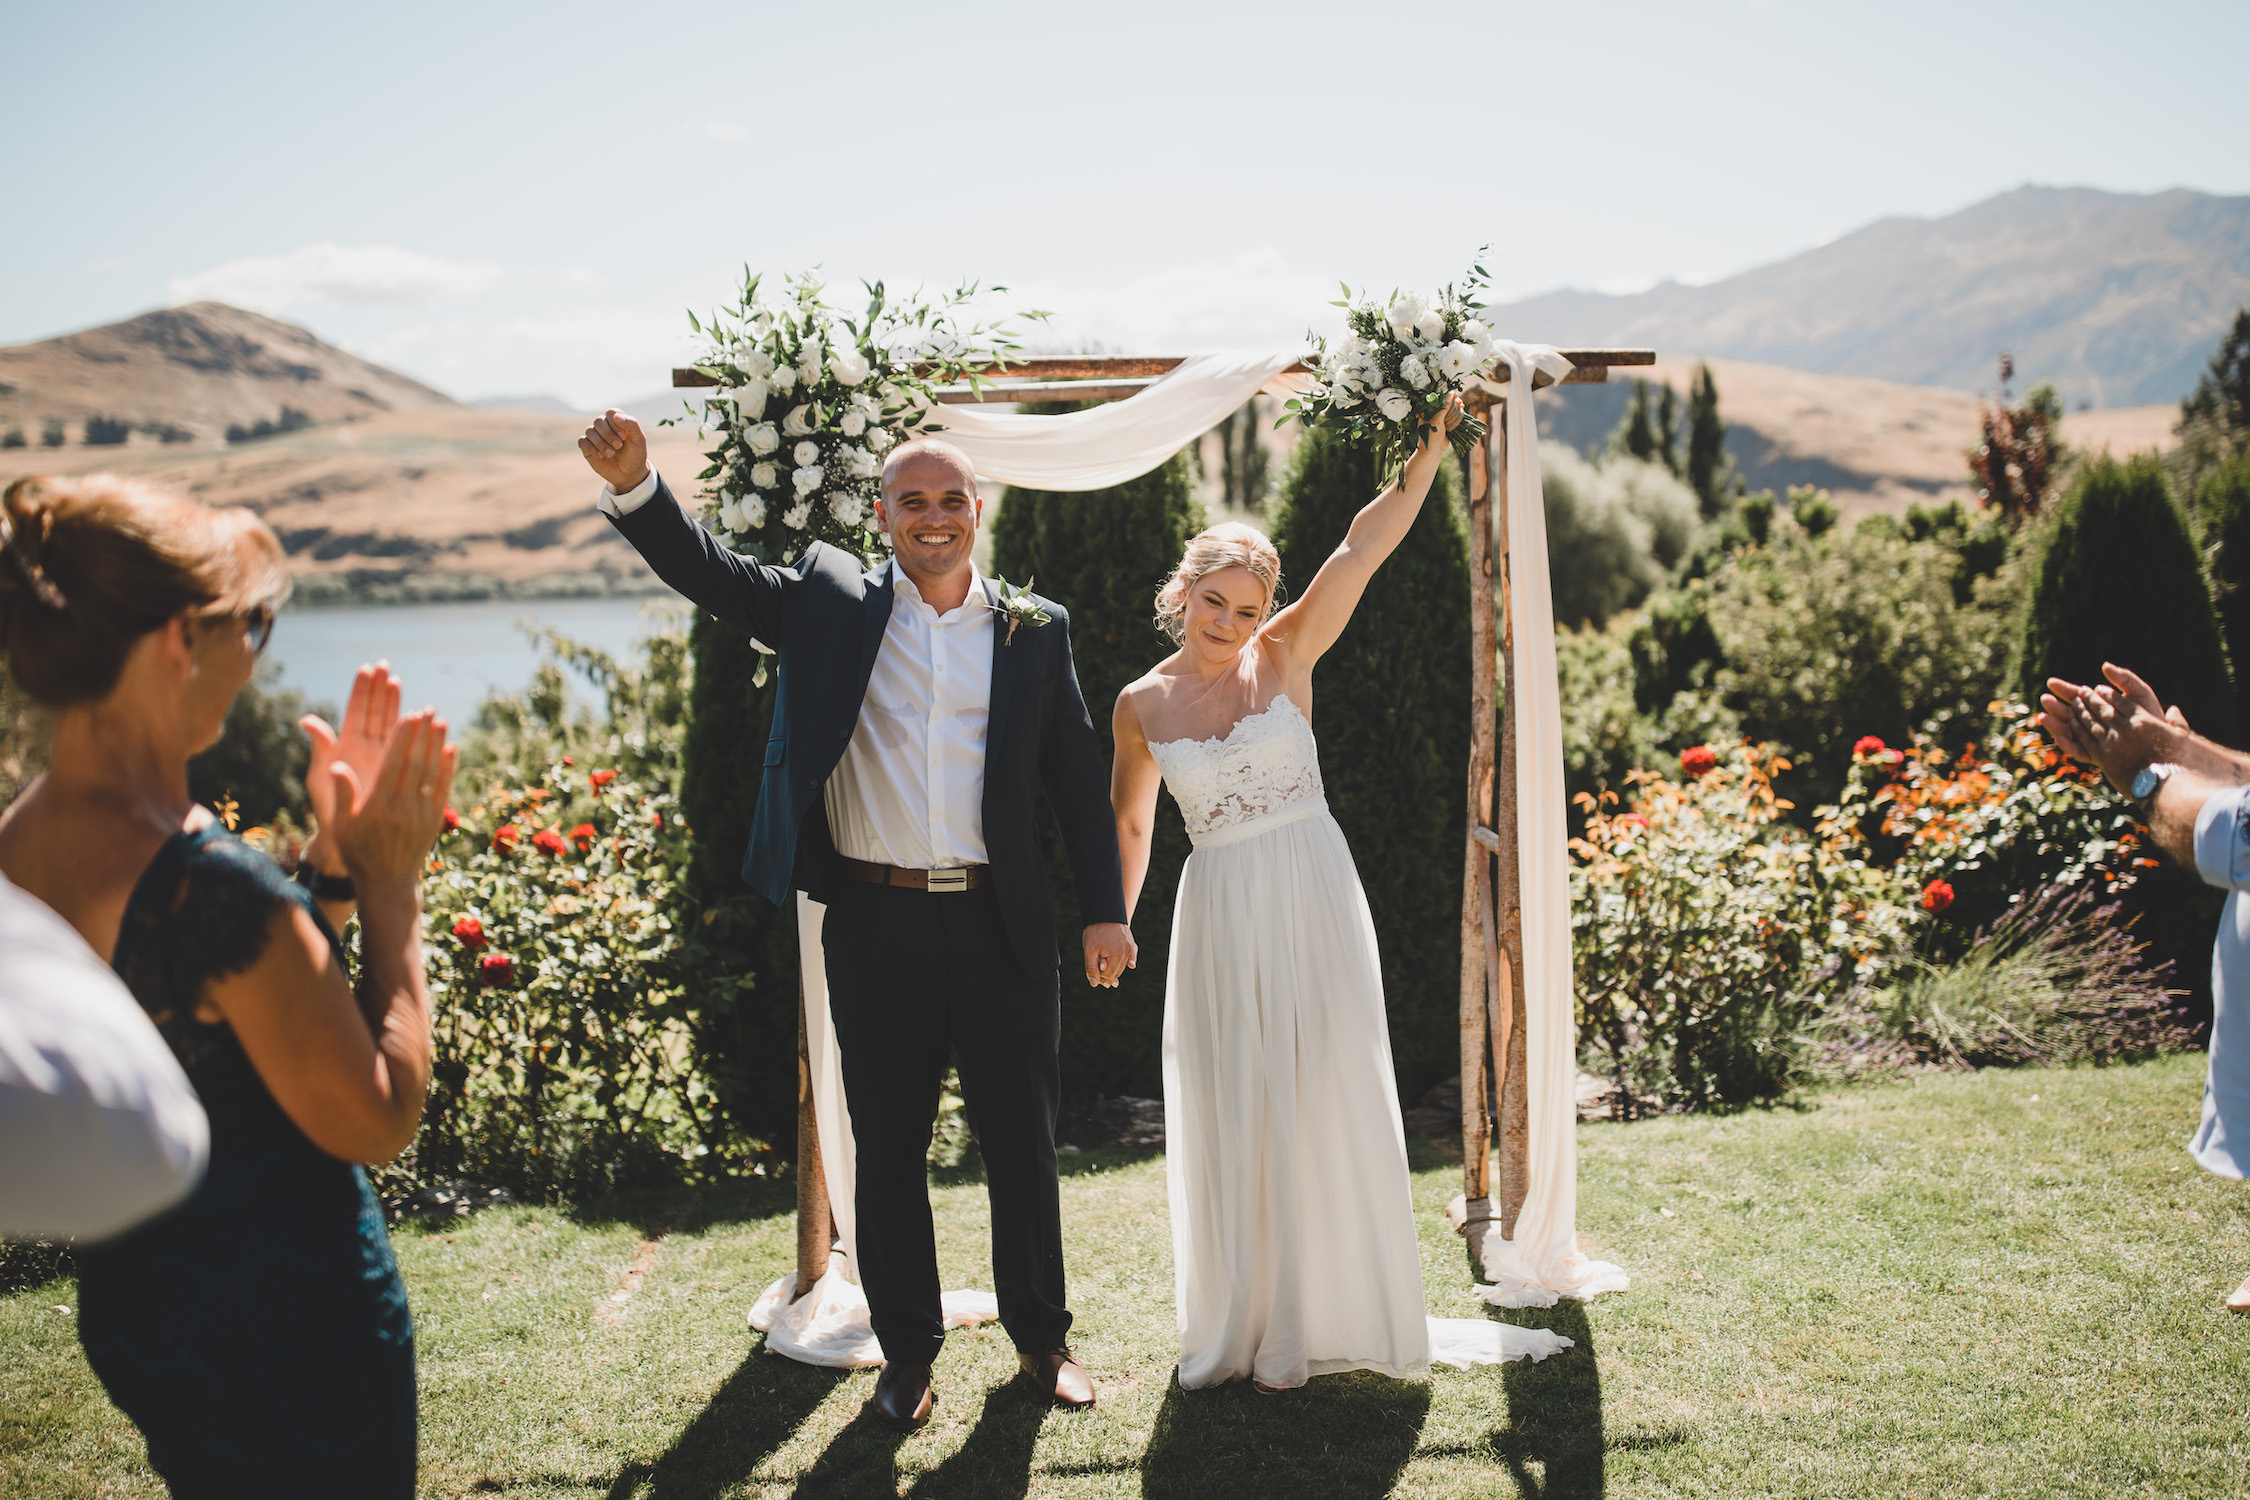 Queenstown Wedding Planner - Holly & Co